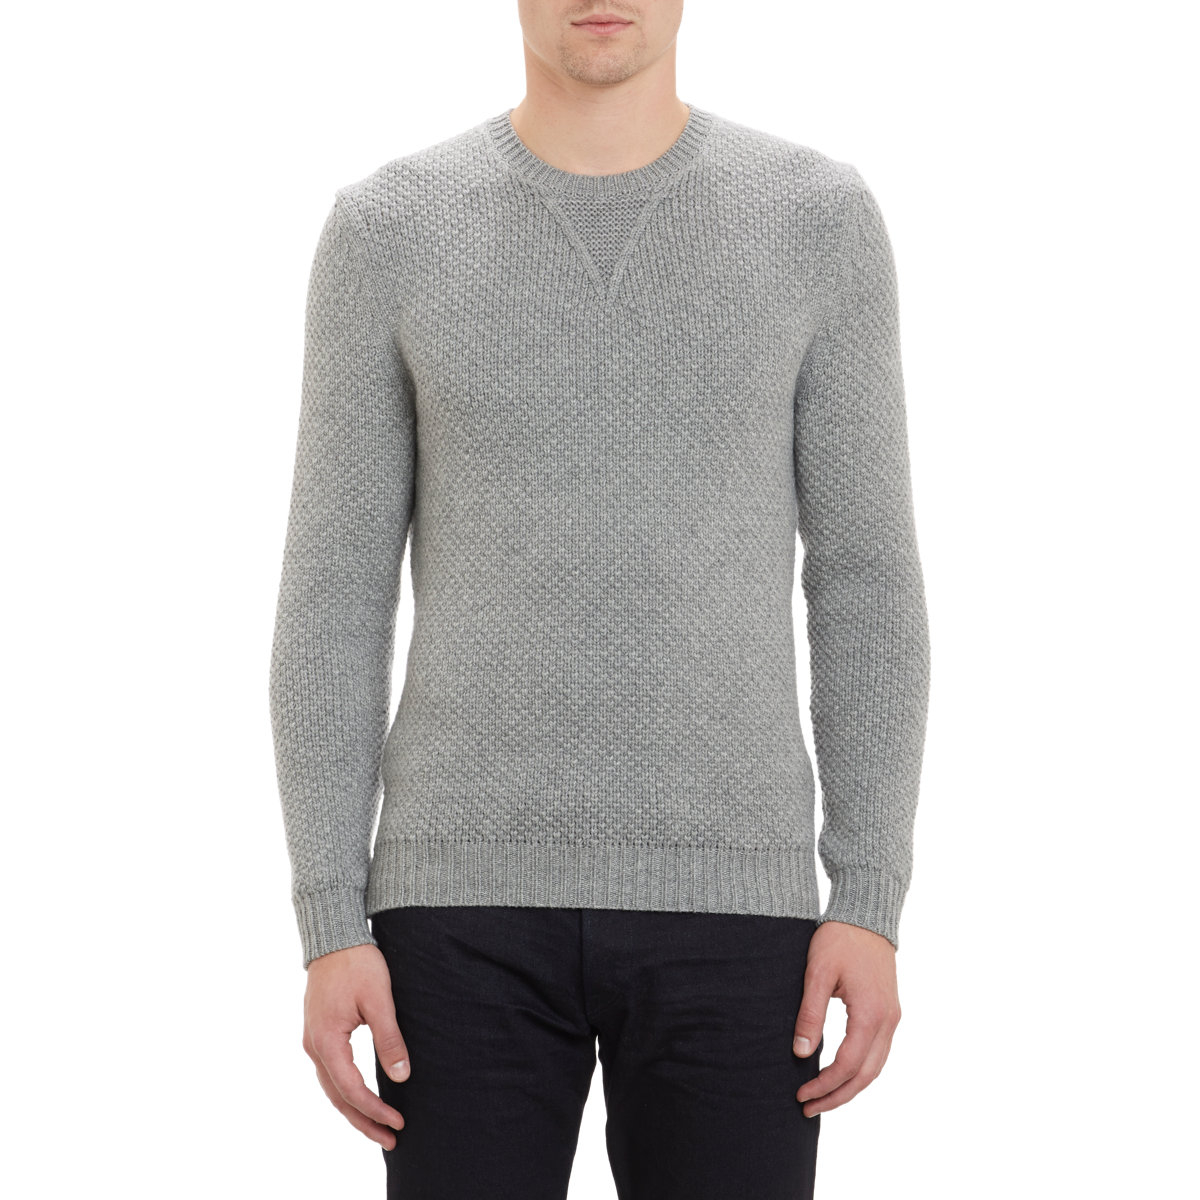 77ec3a6dcd22 Lyst - Exemplaire Seed-Stitch Pullover Sweater in Gray for Men